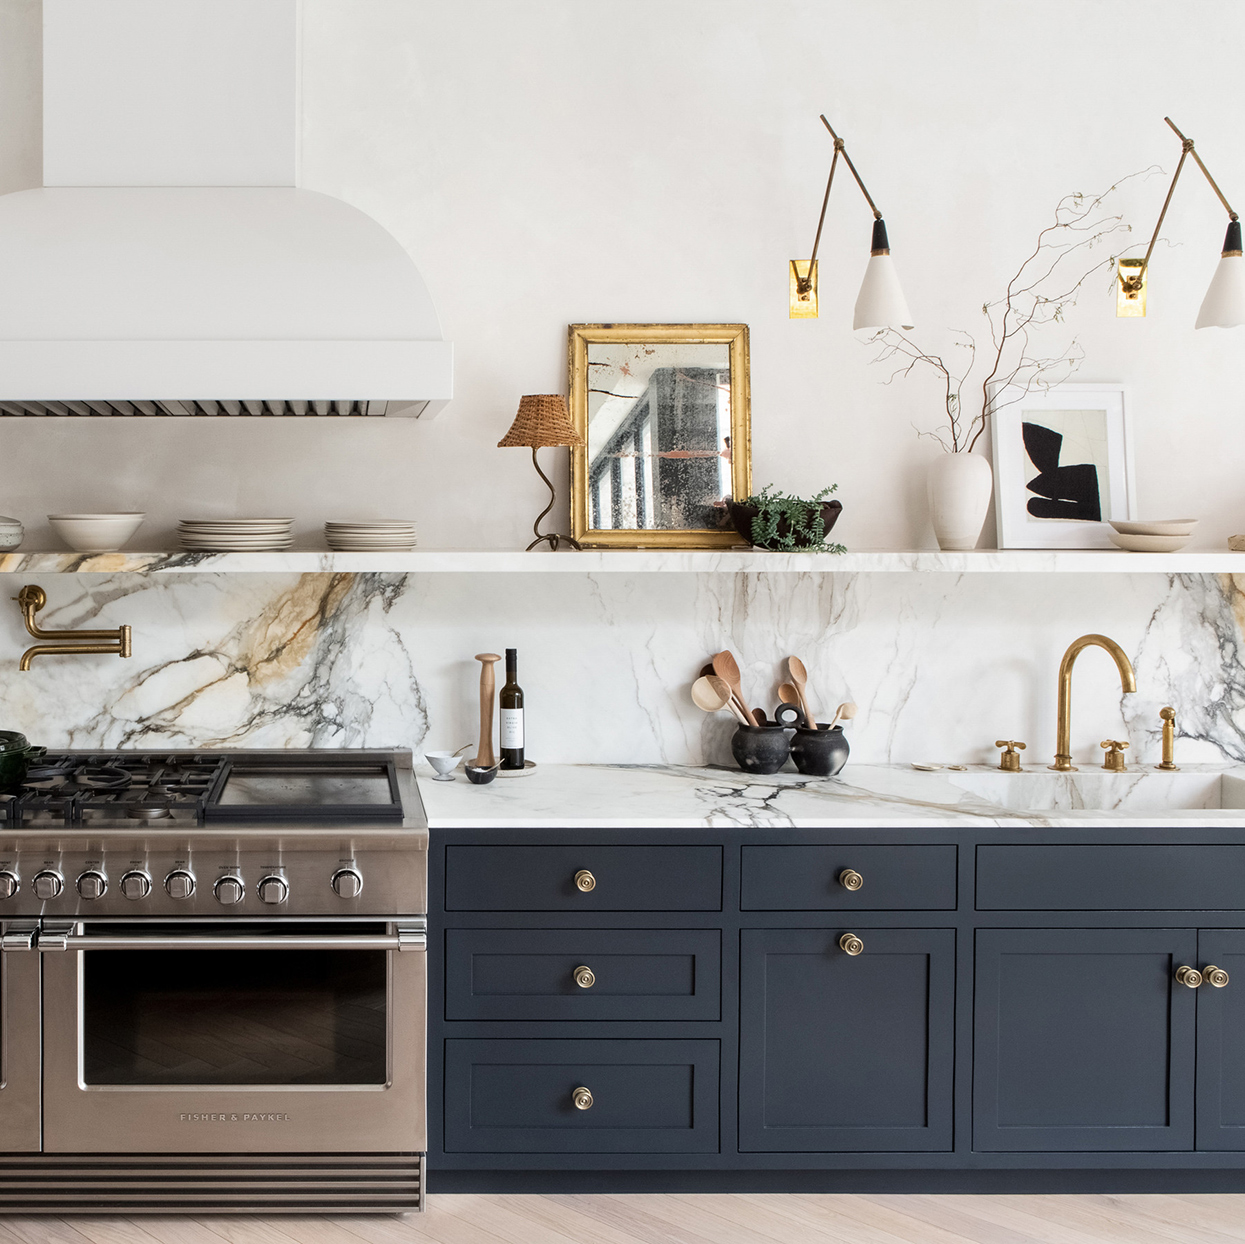 marble backsplash navy cabinets